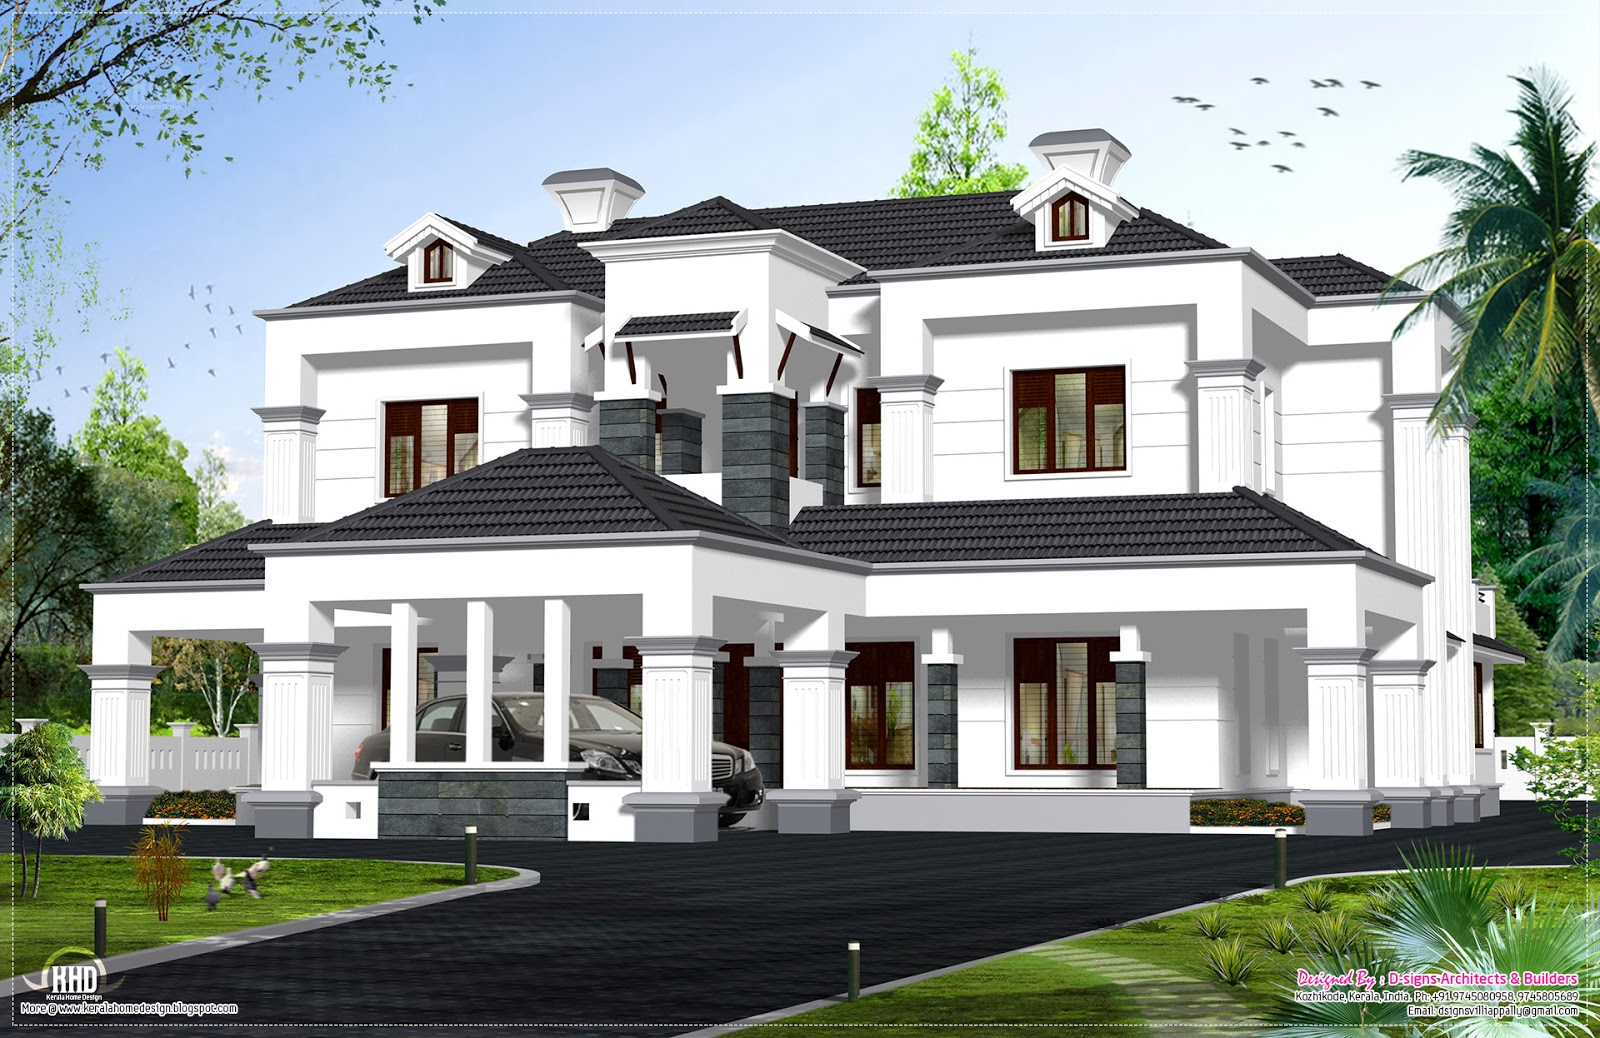 Victorian model house exterior kerala home design and for House plans with photos in kerala style